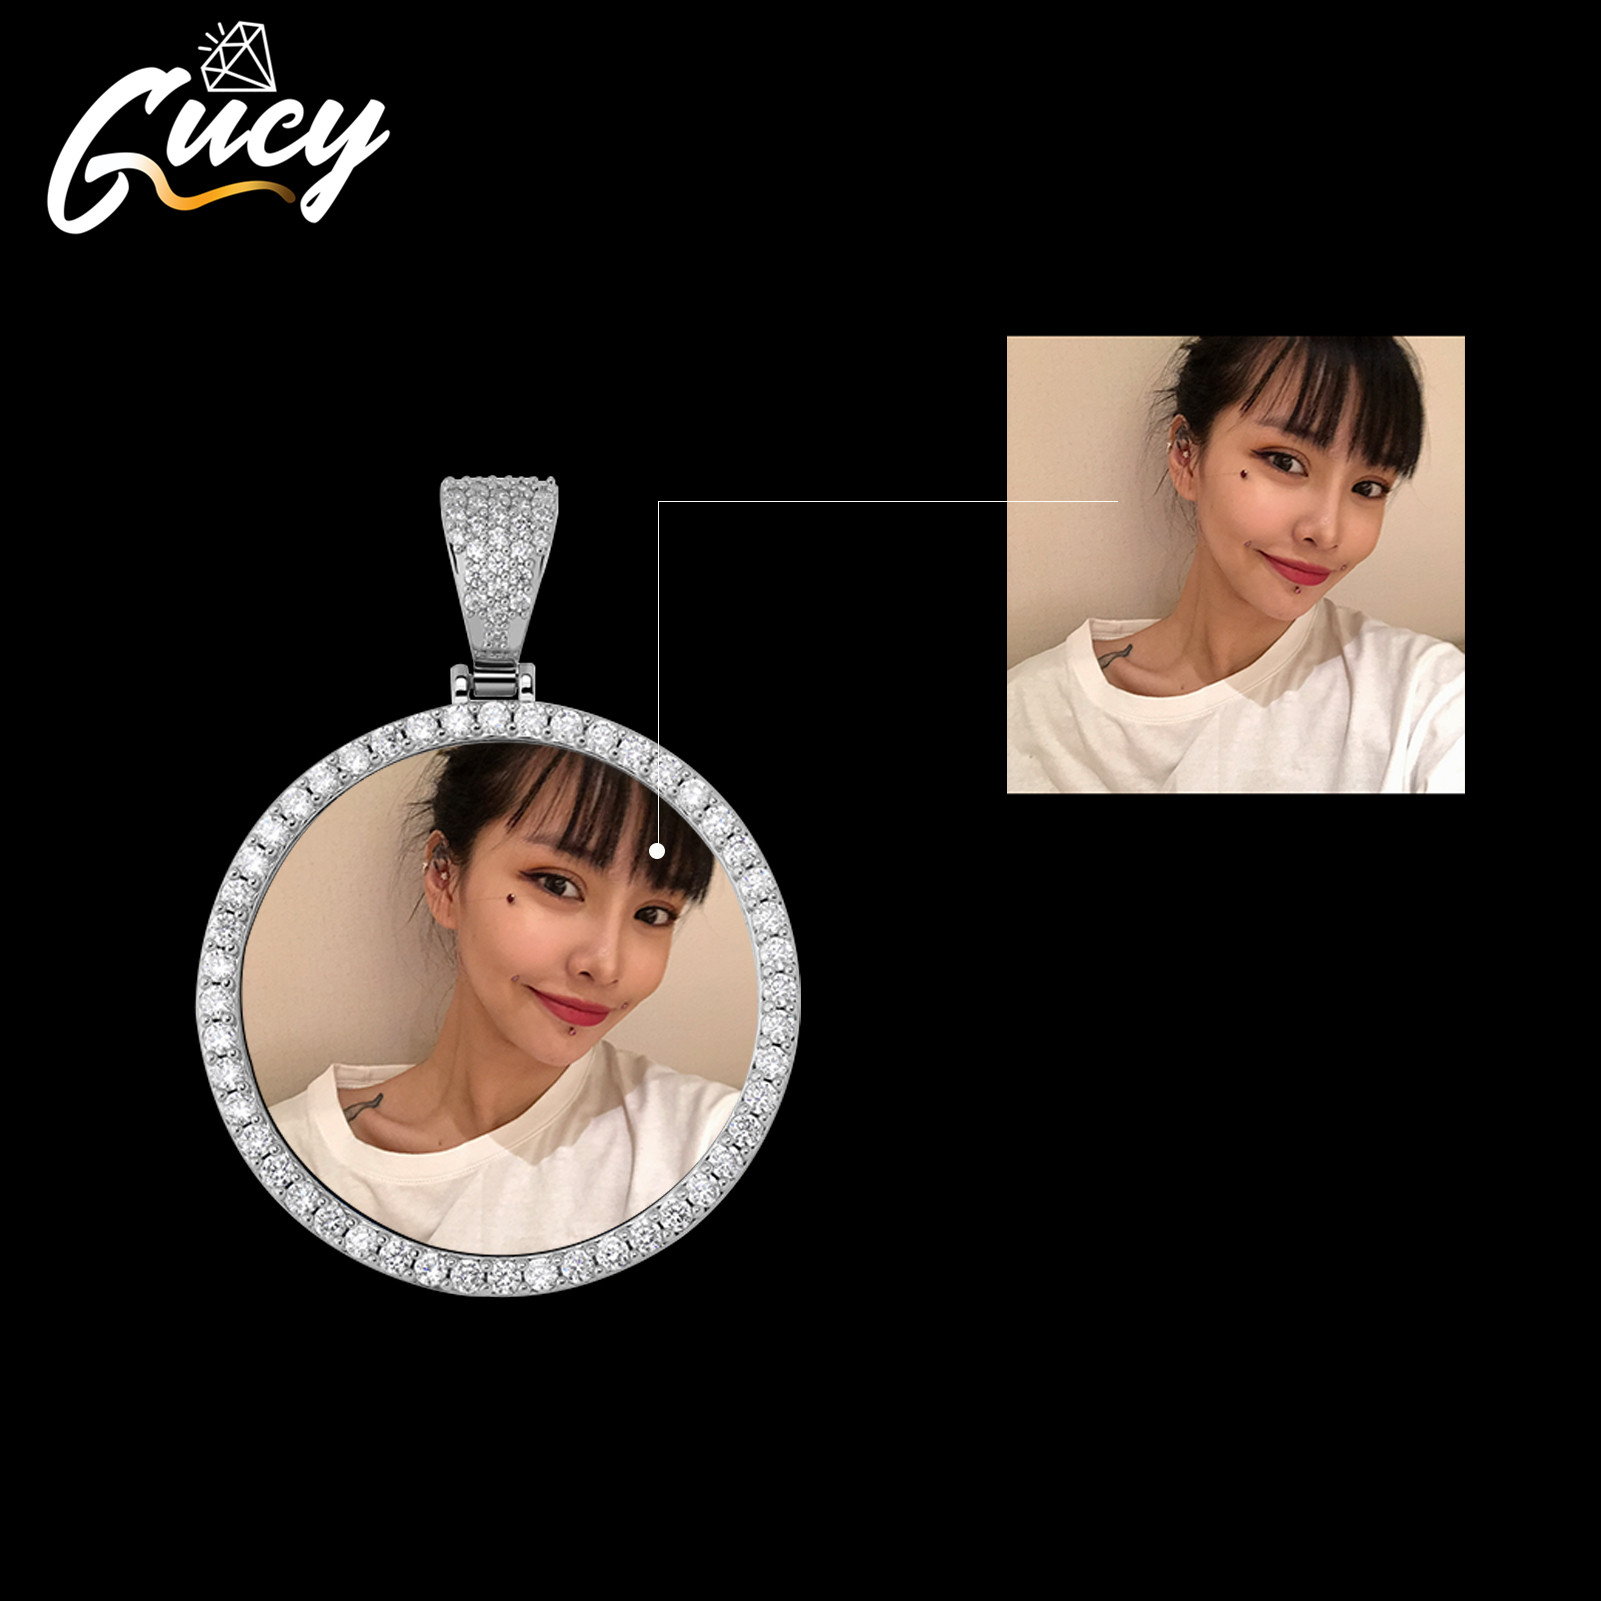 GUCY Fashion Custom Made Photo Roundness Solid Back Pendant & Necklace With Tennis Chain Cubic Zircon Men's Hip hop Jewelry Customized Necklaces  - AliExpress